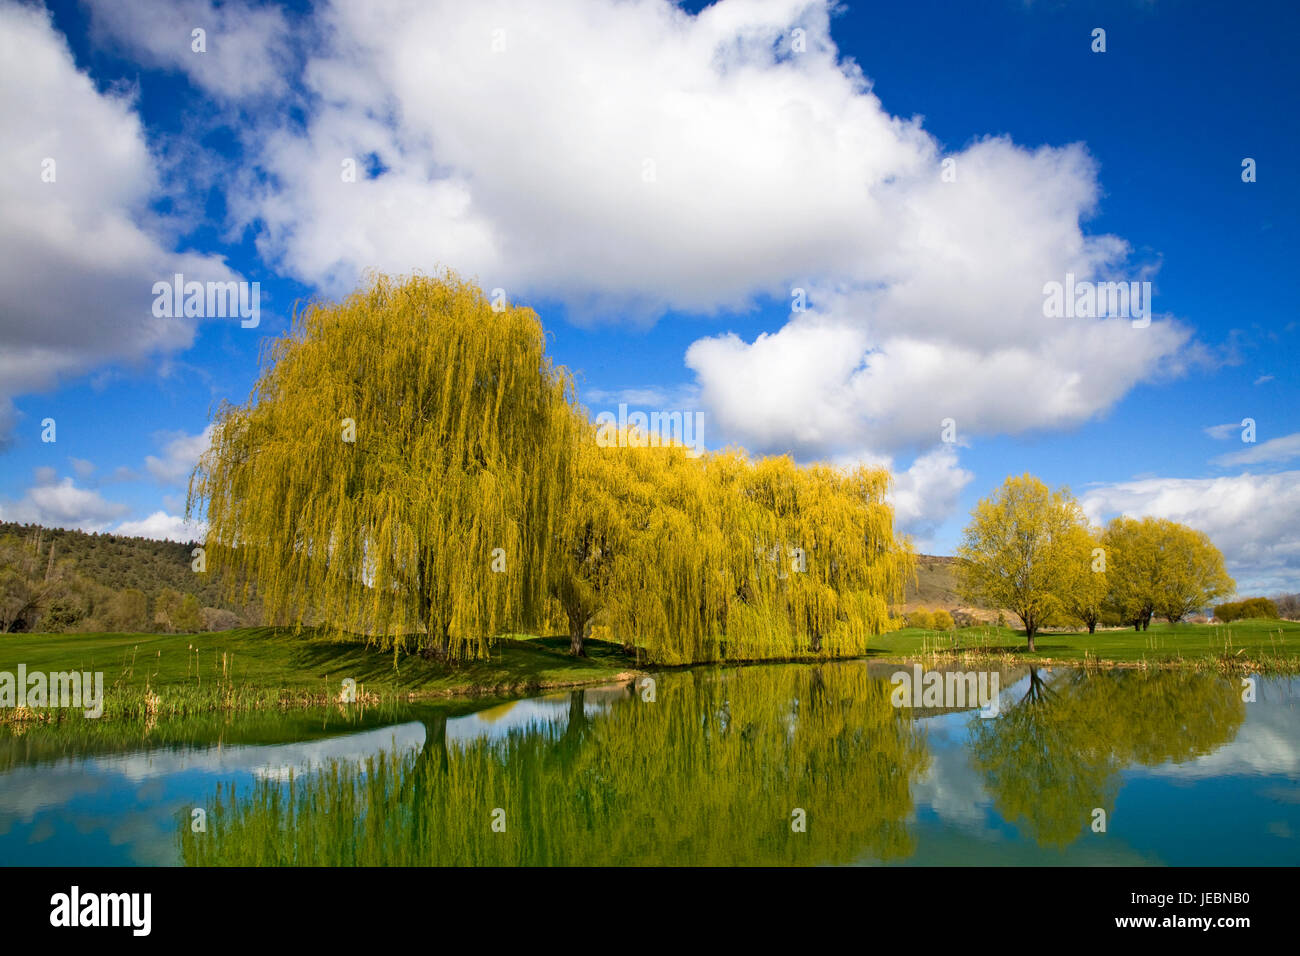 A large weeping willow tree on a grassy lawn on an early spring day. Stock Photo